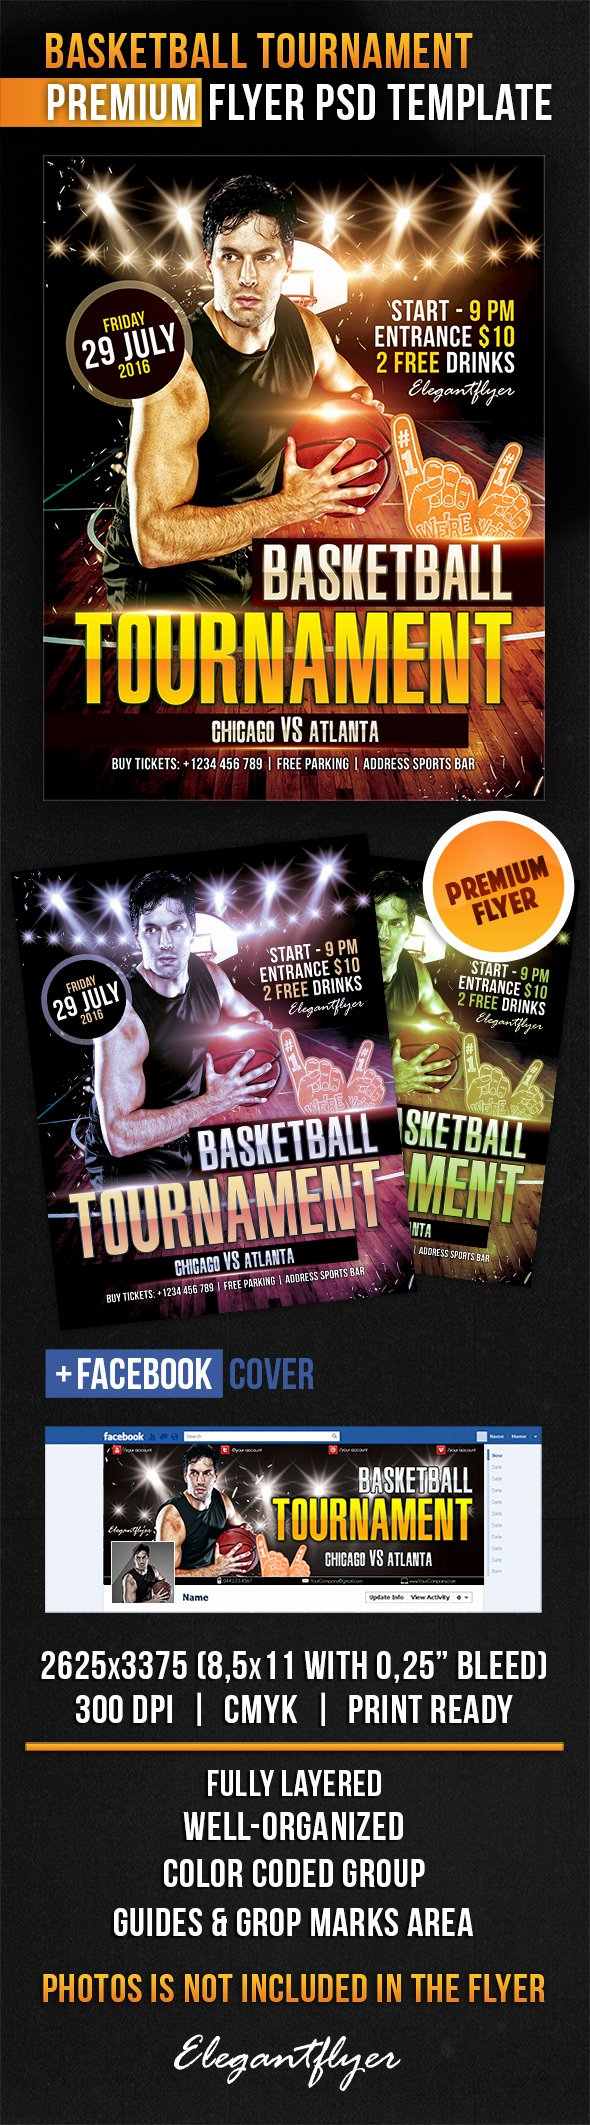 12 Basketball tournament Flyer Psd Templates Free